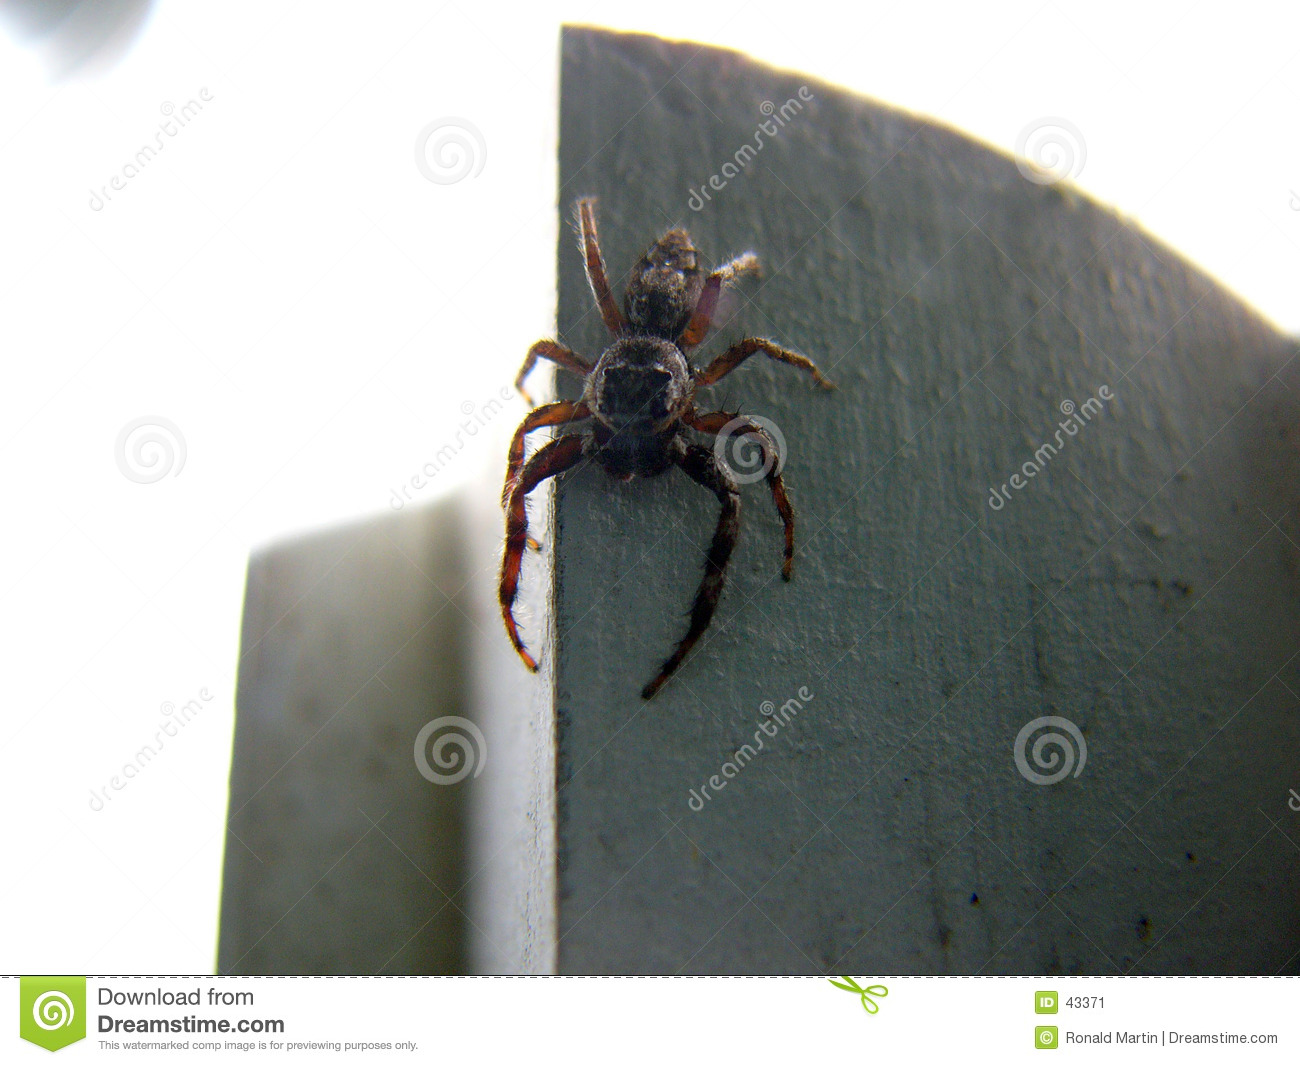 Furchtsame Spinne 2